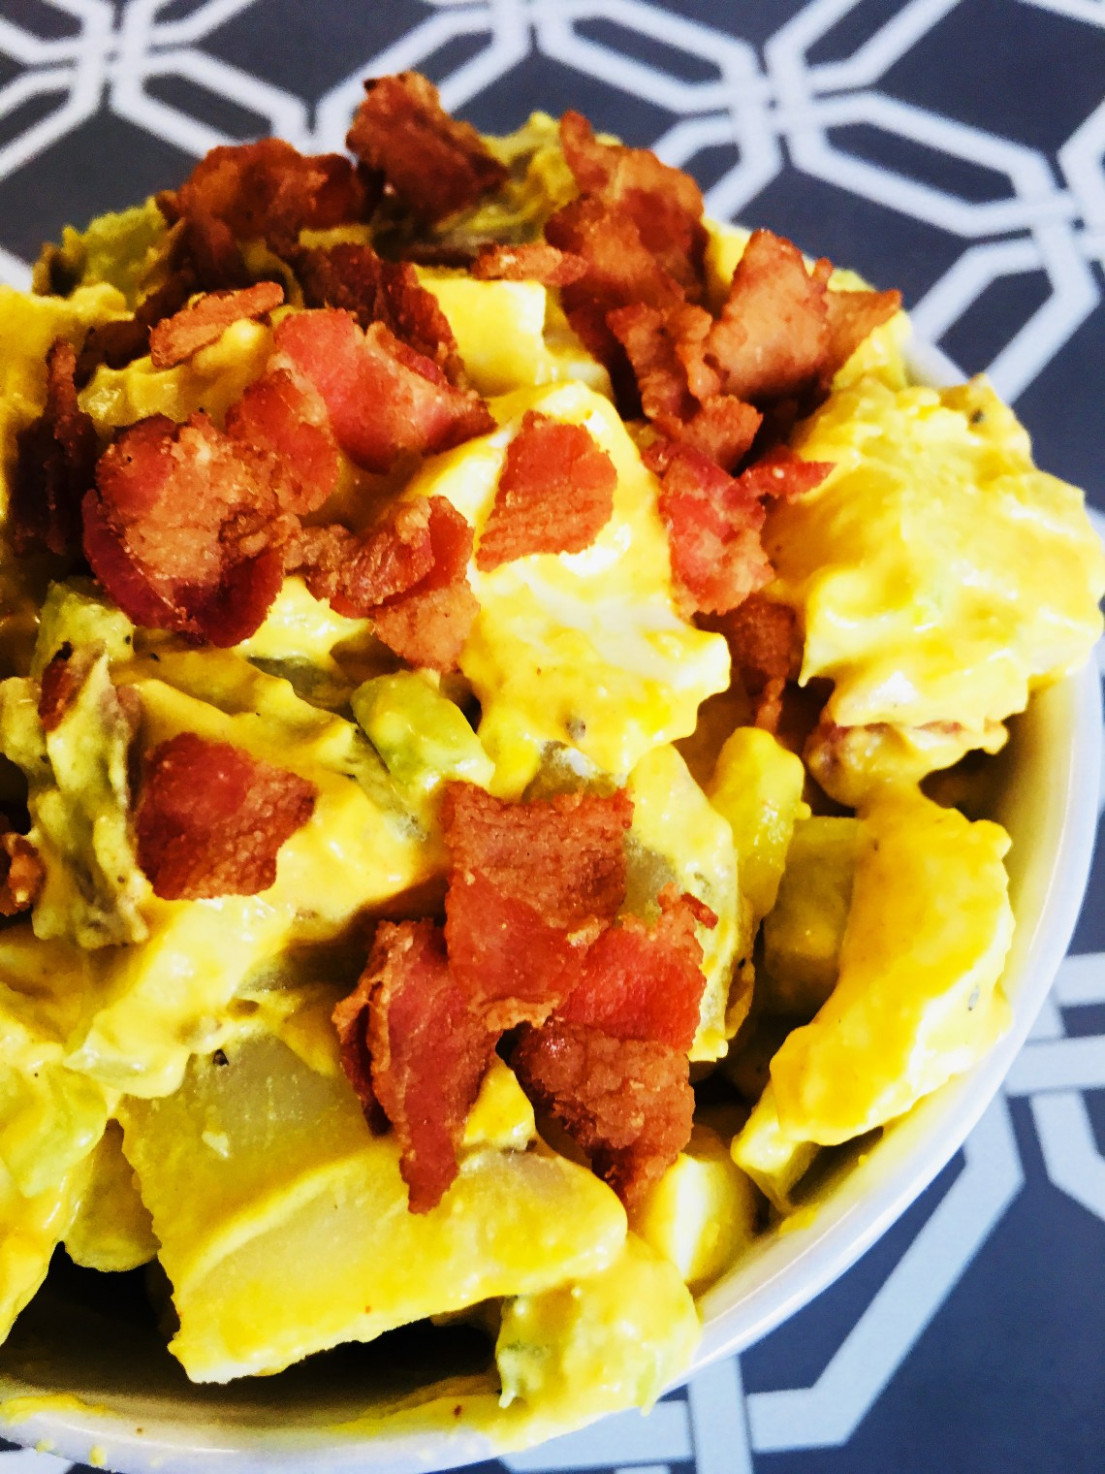 What Goes Well With Potato Salad - 11++ best healthy food ..